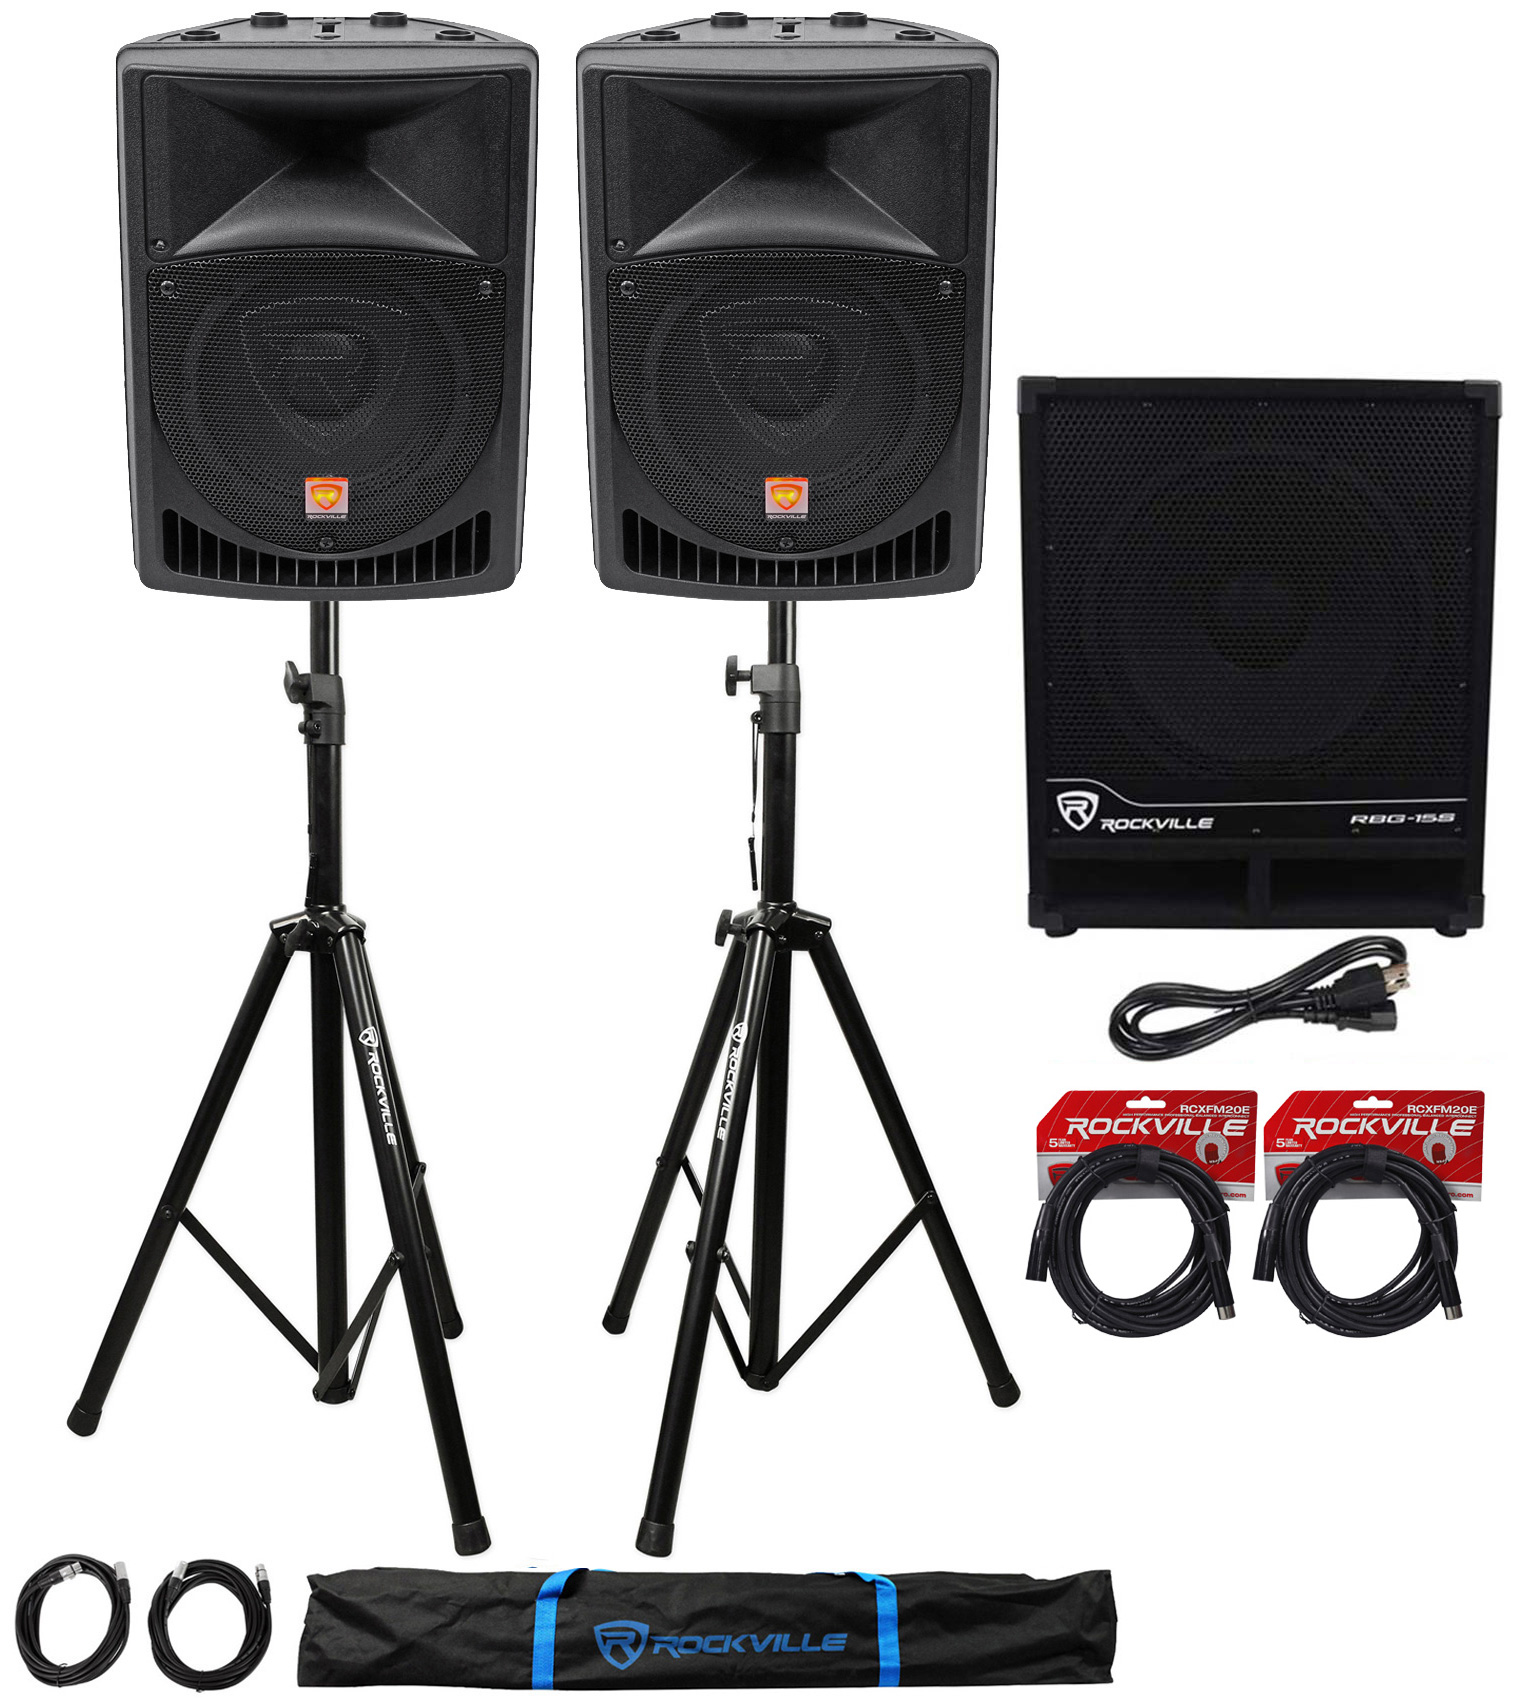 "(2) Rockville RPG8 8"" Powered PA Speakers+Active 15"" Subwoofer+Stands+Cables by ROCKVILLE"